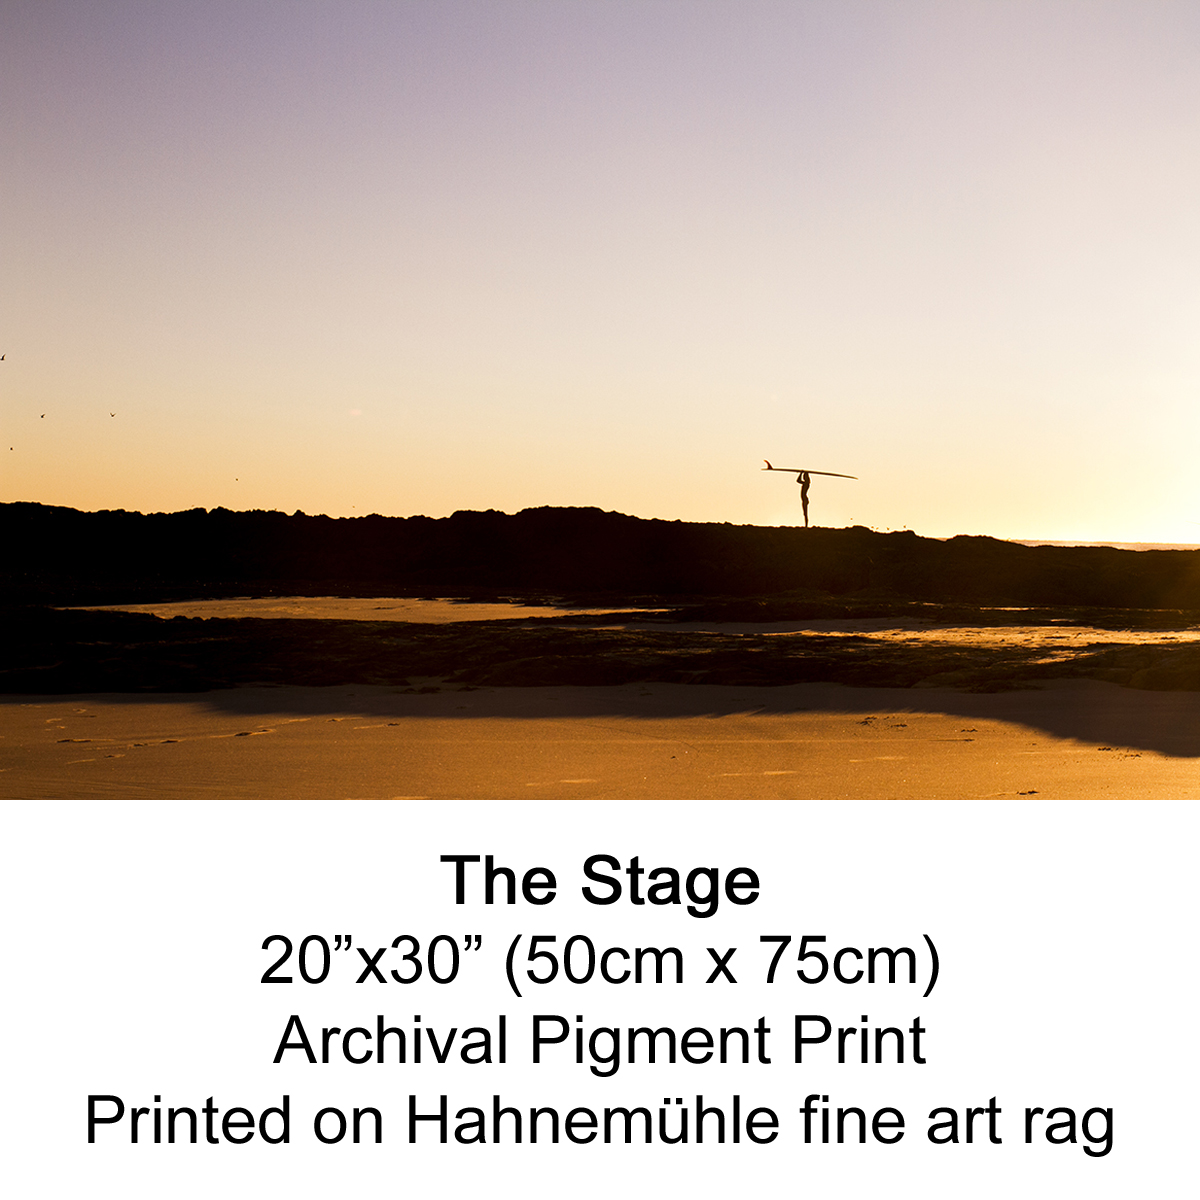 The Stage by fran miller.jpg